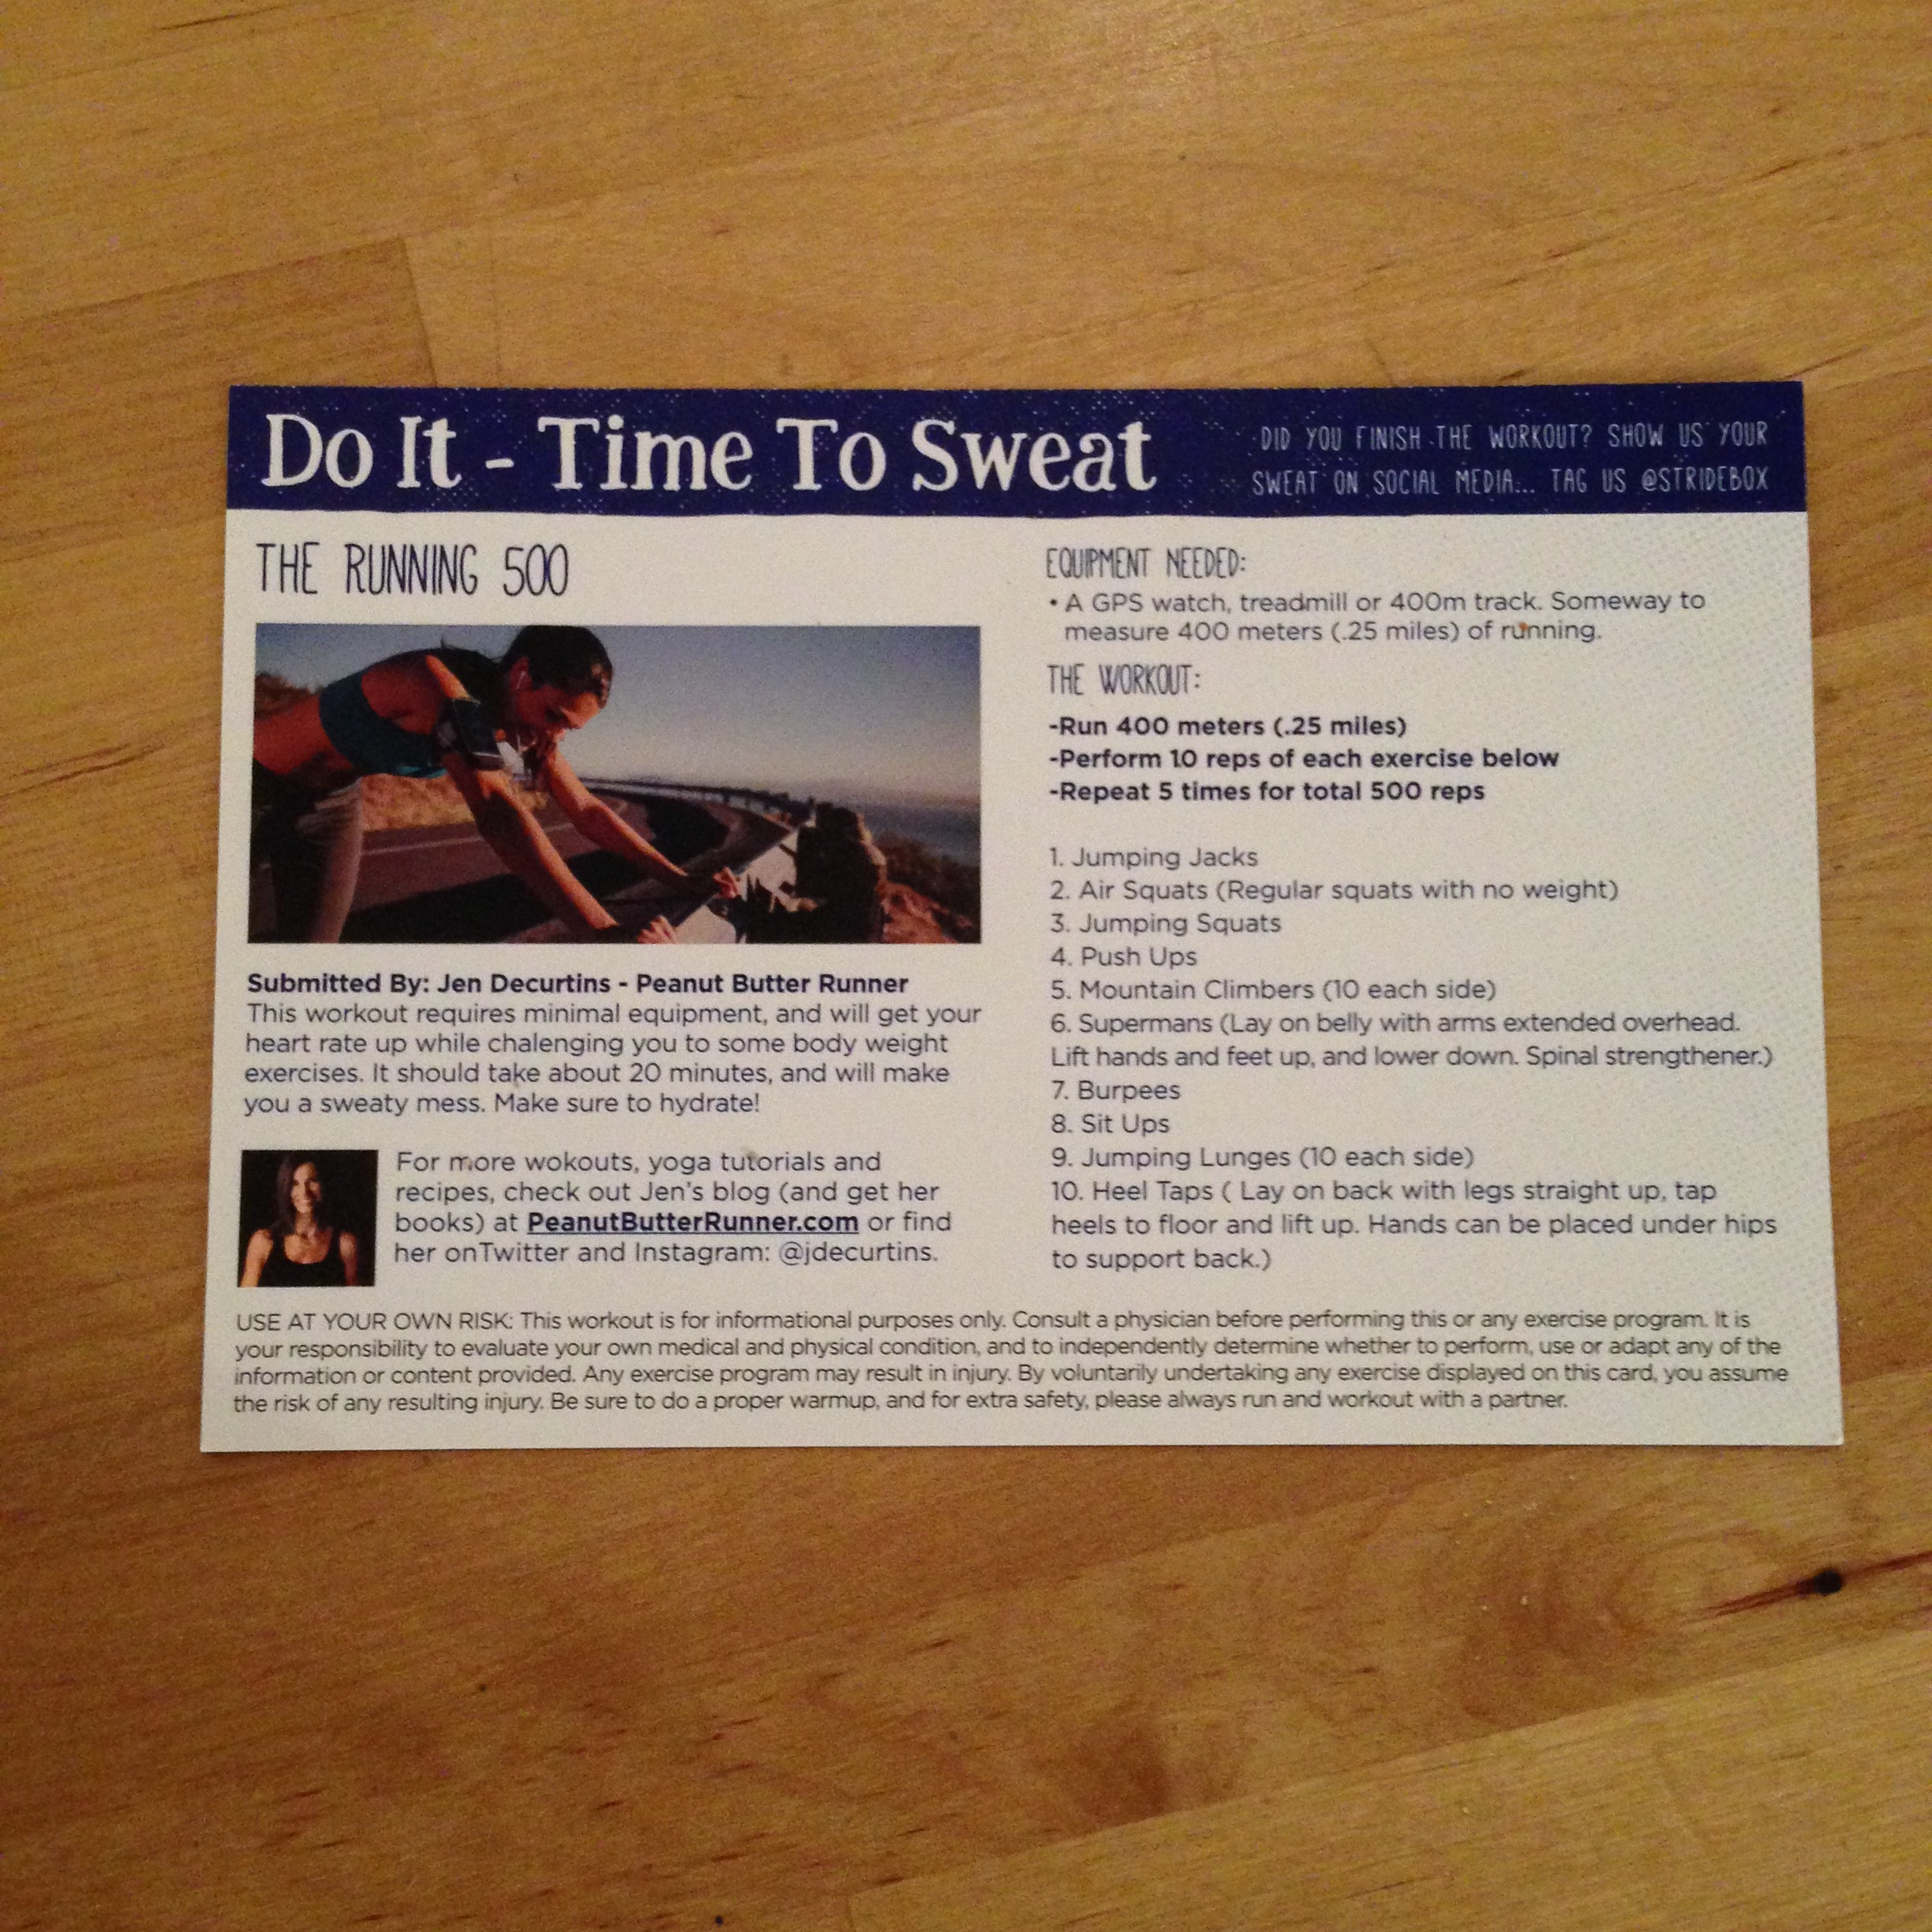 Sample workout/recipe card that comes in each box. This workout from Peanut Butter Runner looks like a toughie!